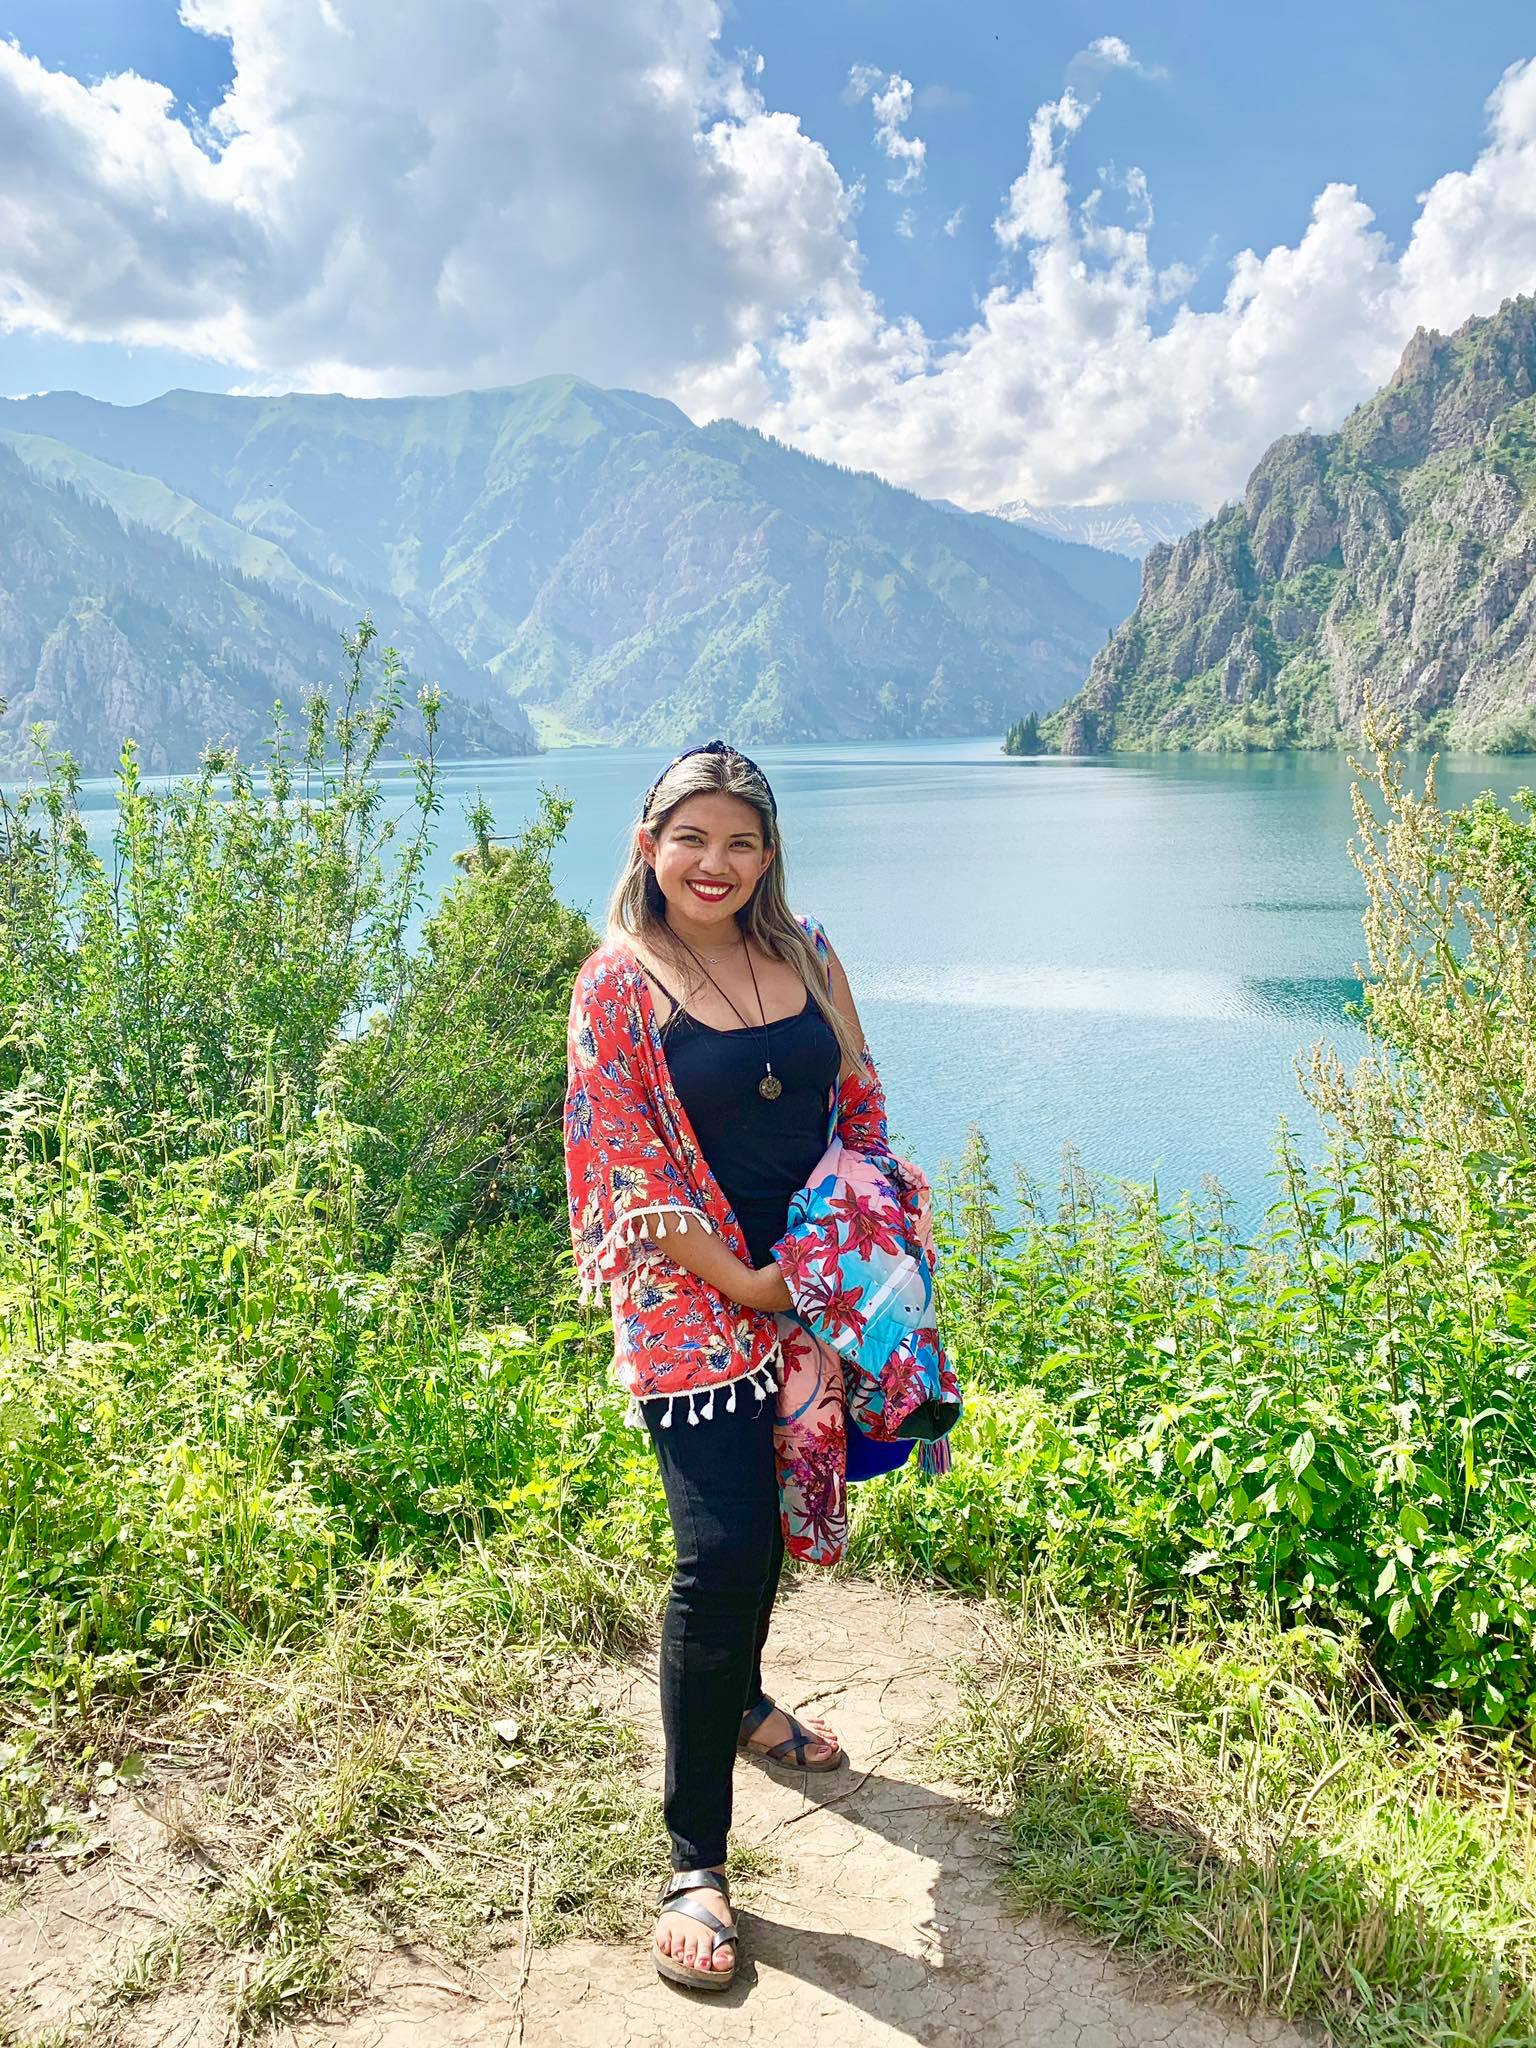 Kach Solo Travels in 2019 Roadtrip to Sary Chelek Lake which is 330 km. from Osh, Kyrgyzstan2.jpg